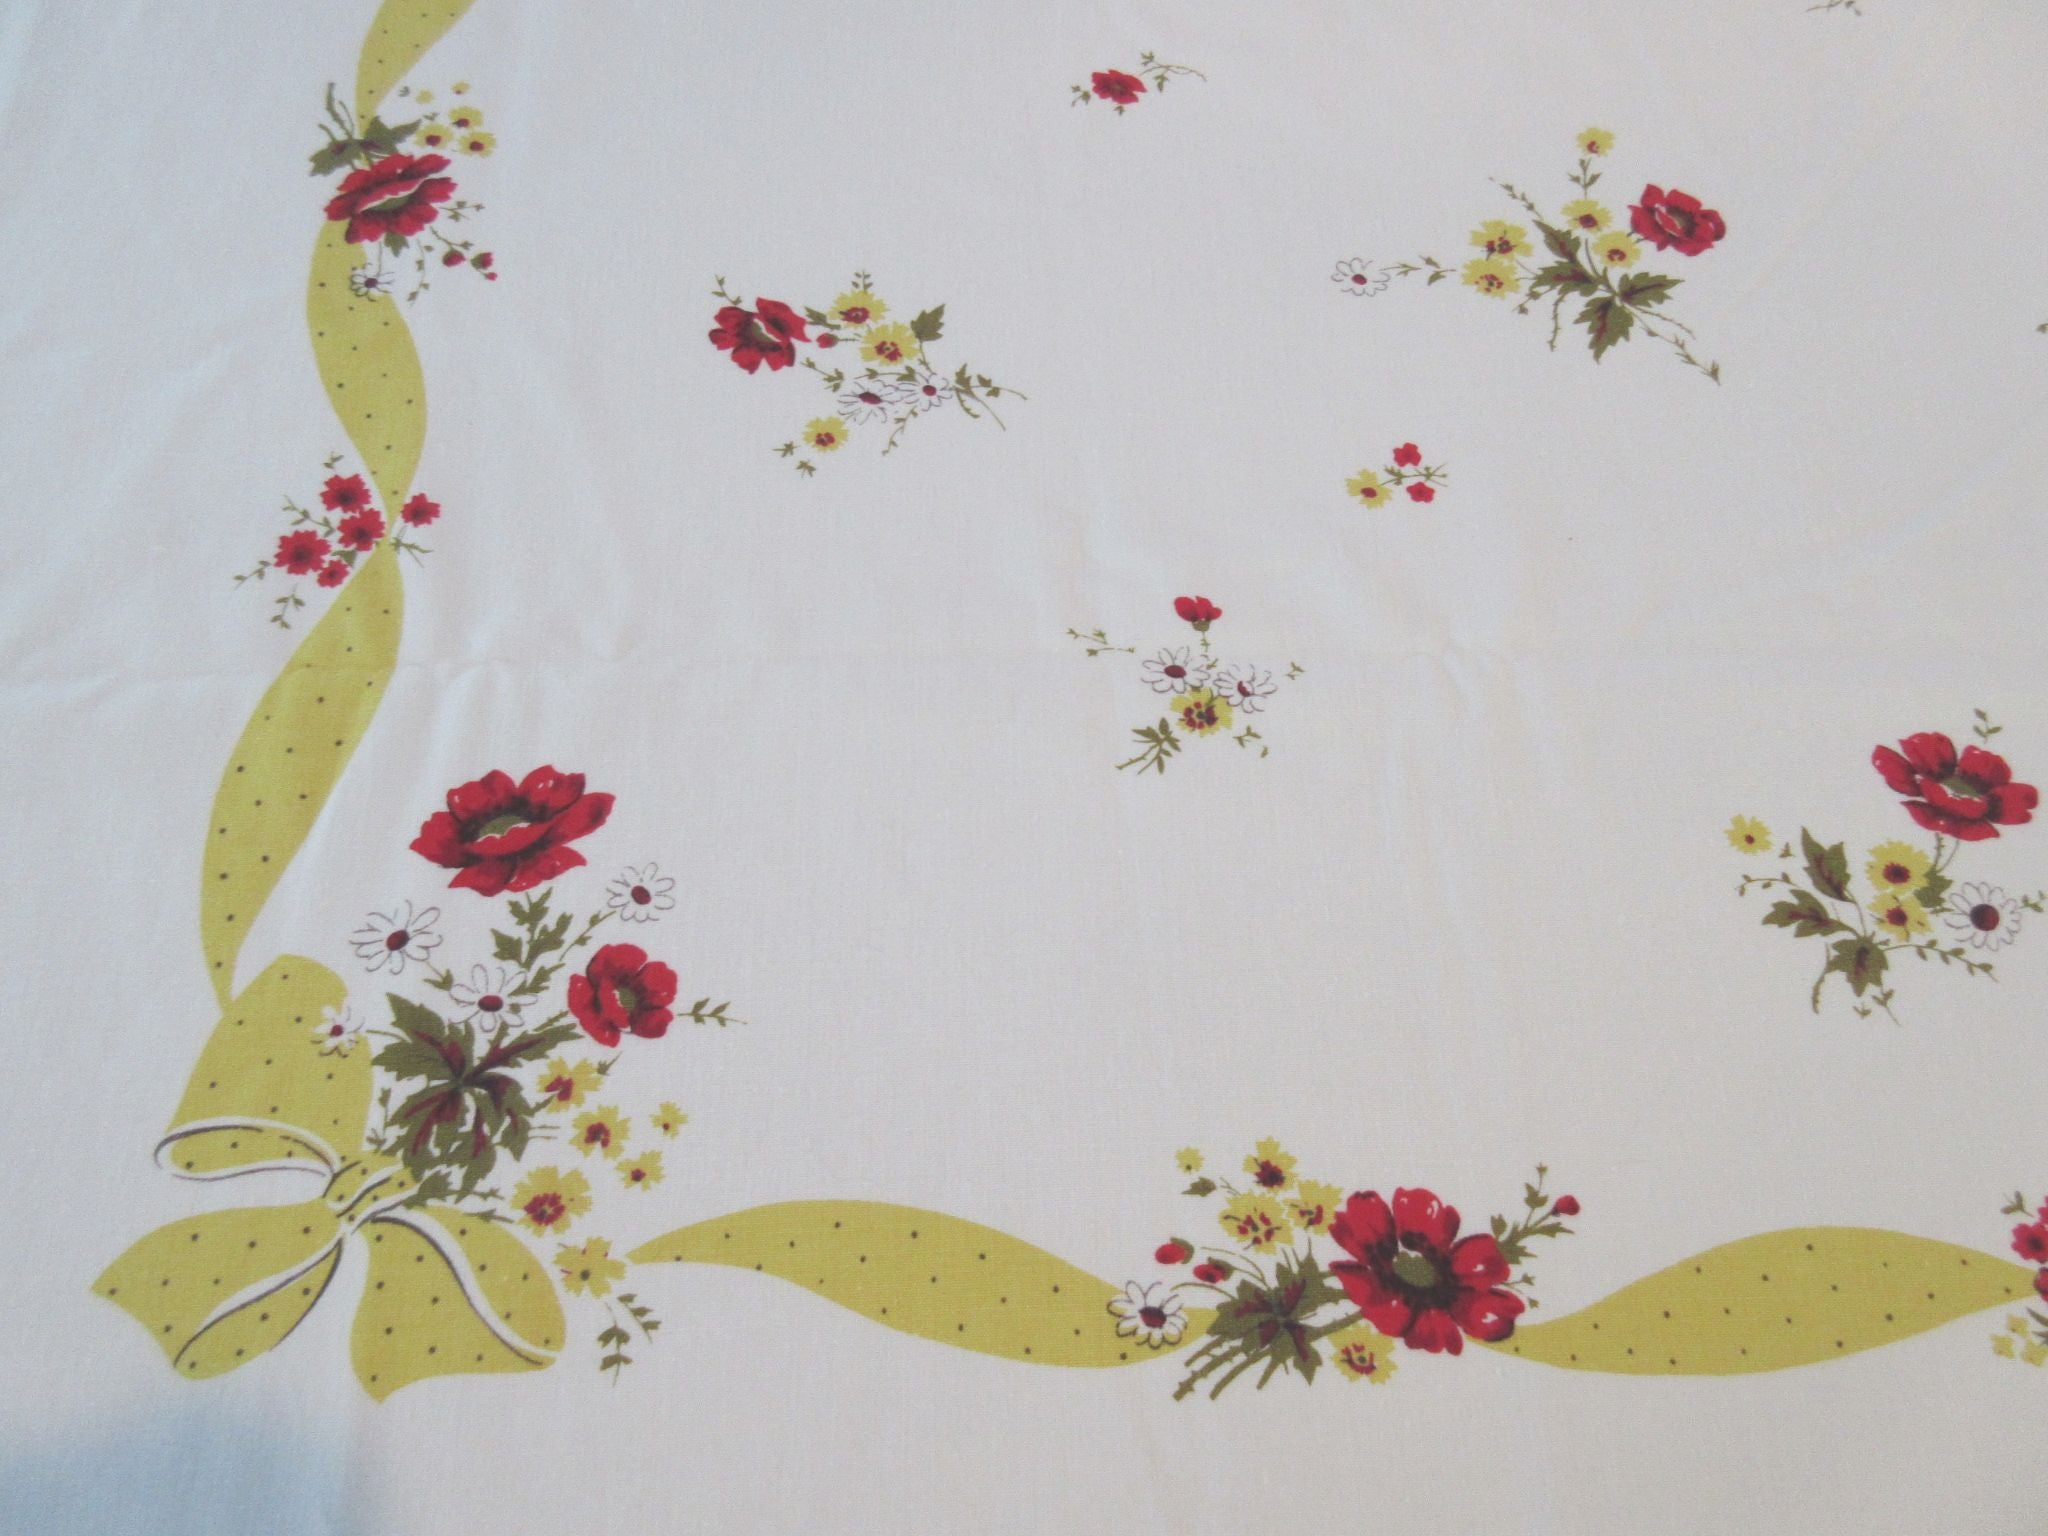 Red Wild Roses on Yellow Polkadot Ribbons Floral Vintage Printed Tablecloth (52 X 45)